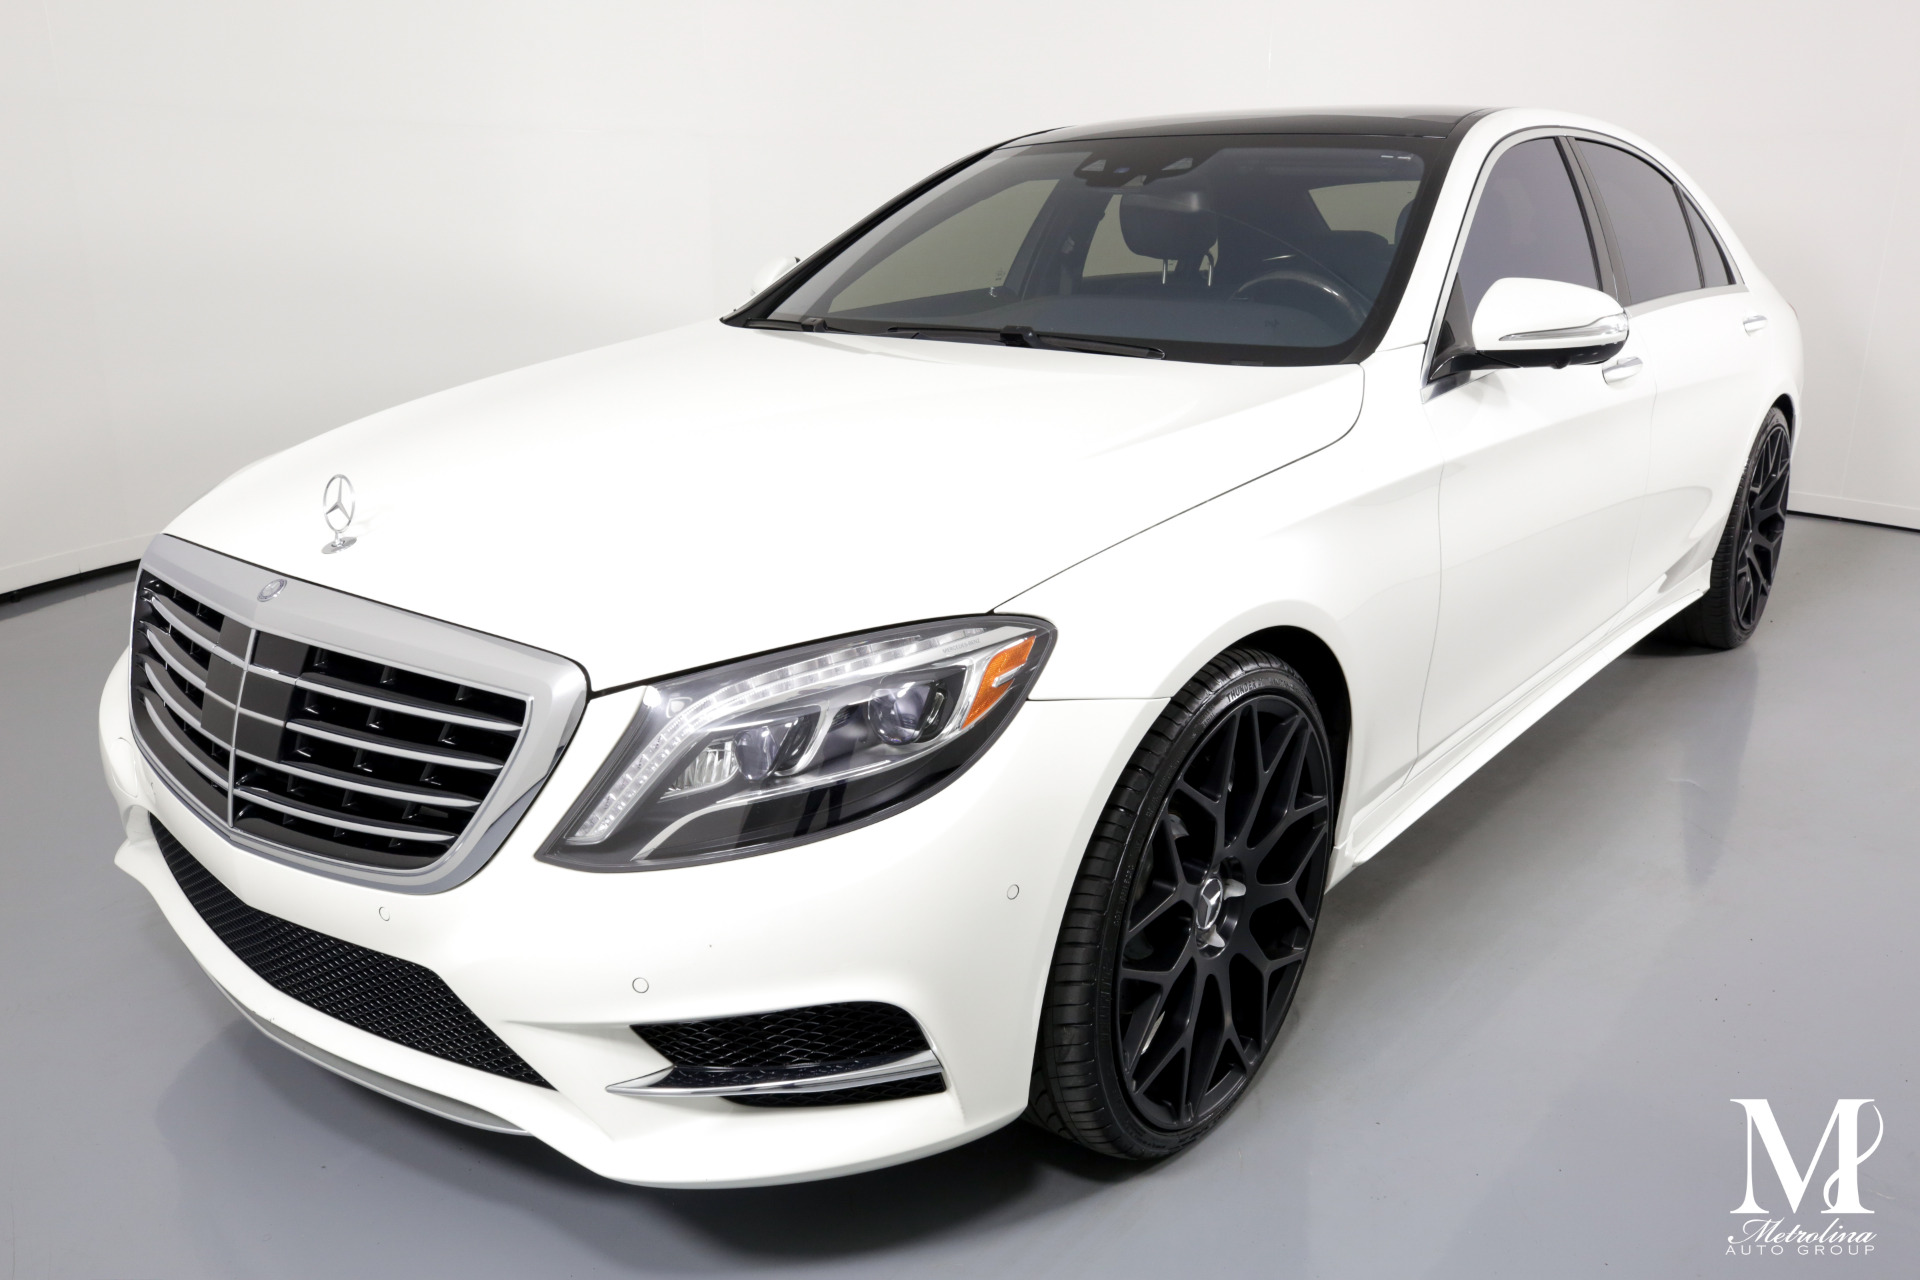 Used 2016 Mercedes-Benz S-Class S 550 for sale $45,996 at Metrolina Auto Group in Charlotte NC 28217 - 4